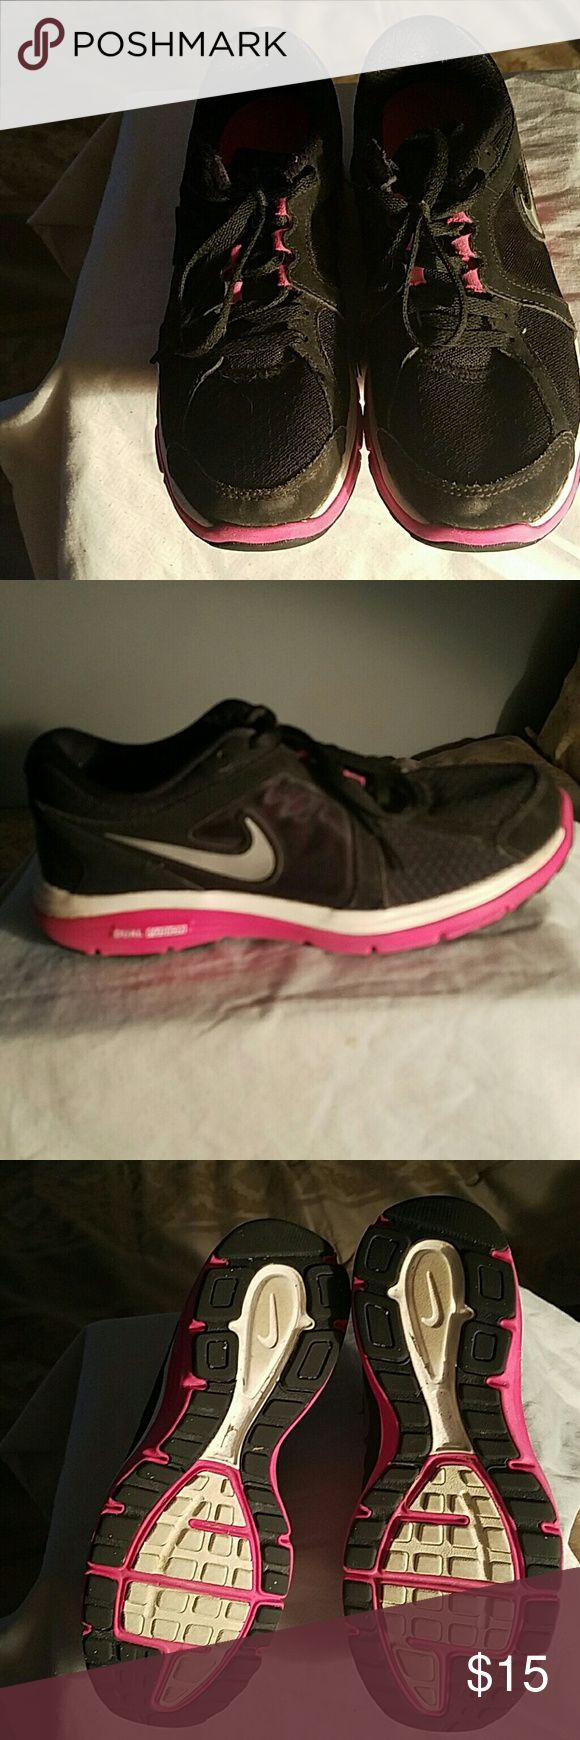 Nike Dual Fusion Sneakers Nike Dual Fusion Sneakers. Size 7 1/2.  In very good used condition, not worn many times at all. Great color mix...Black and Pink with silver swoosh on sides. No Box. Excellent pair of Nike Sneakers at incredible price!! Nike Shoes Sneakers